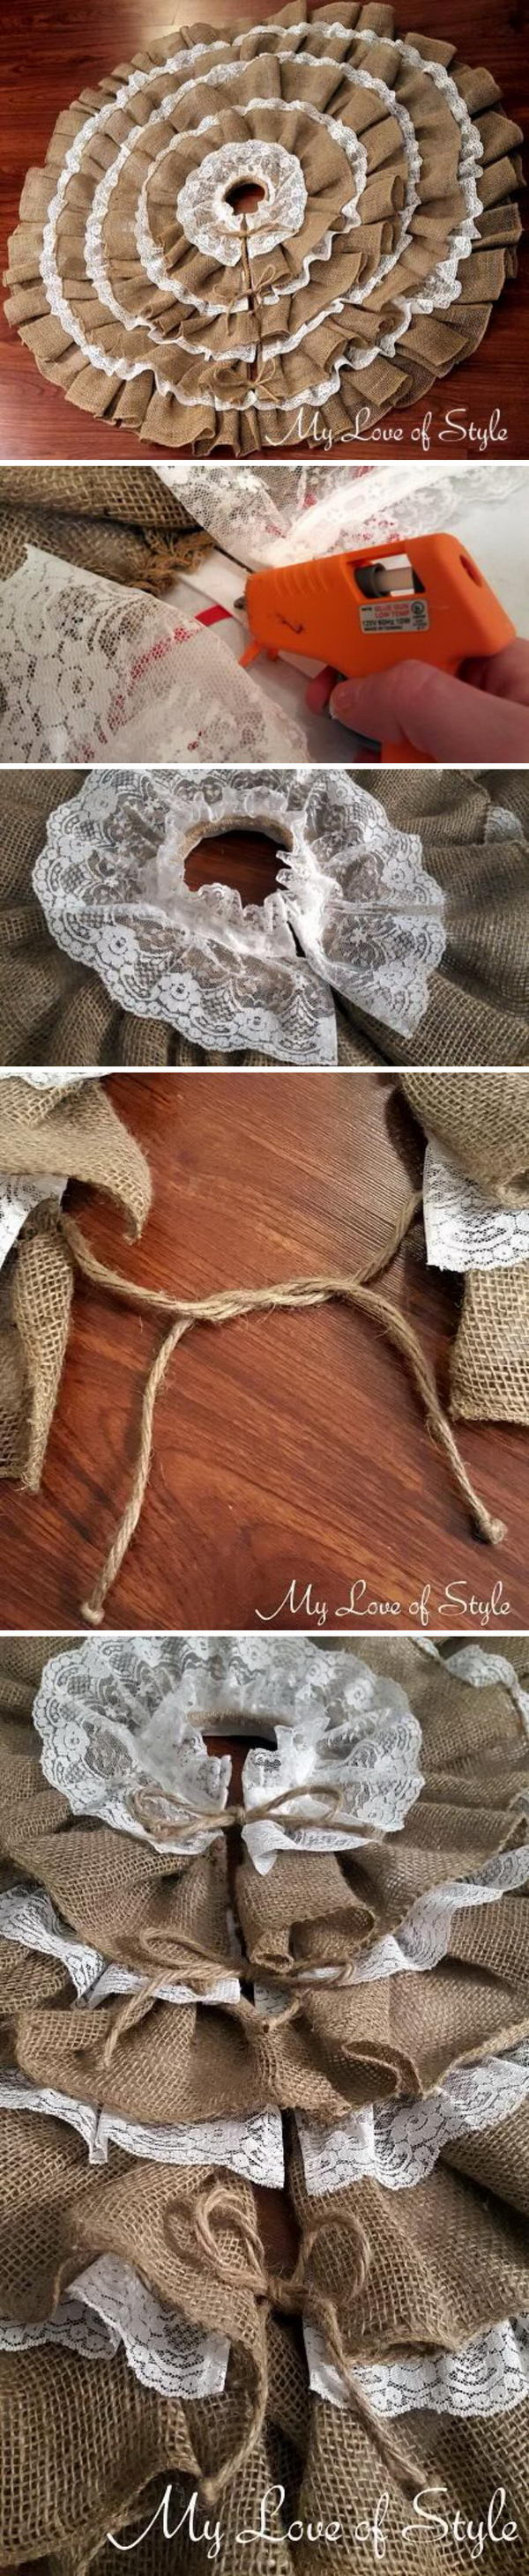 DIY No Sew Burlap and Lace Christmas Tree Skirt.